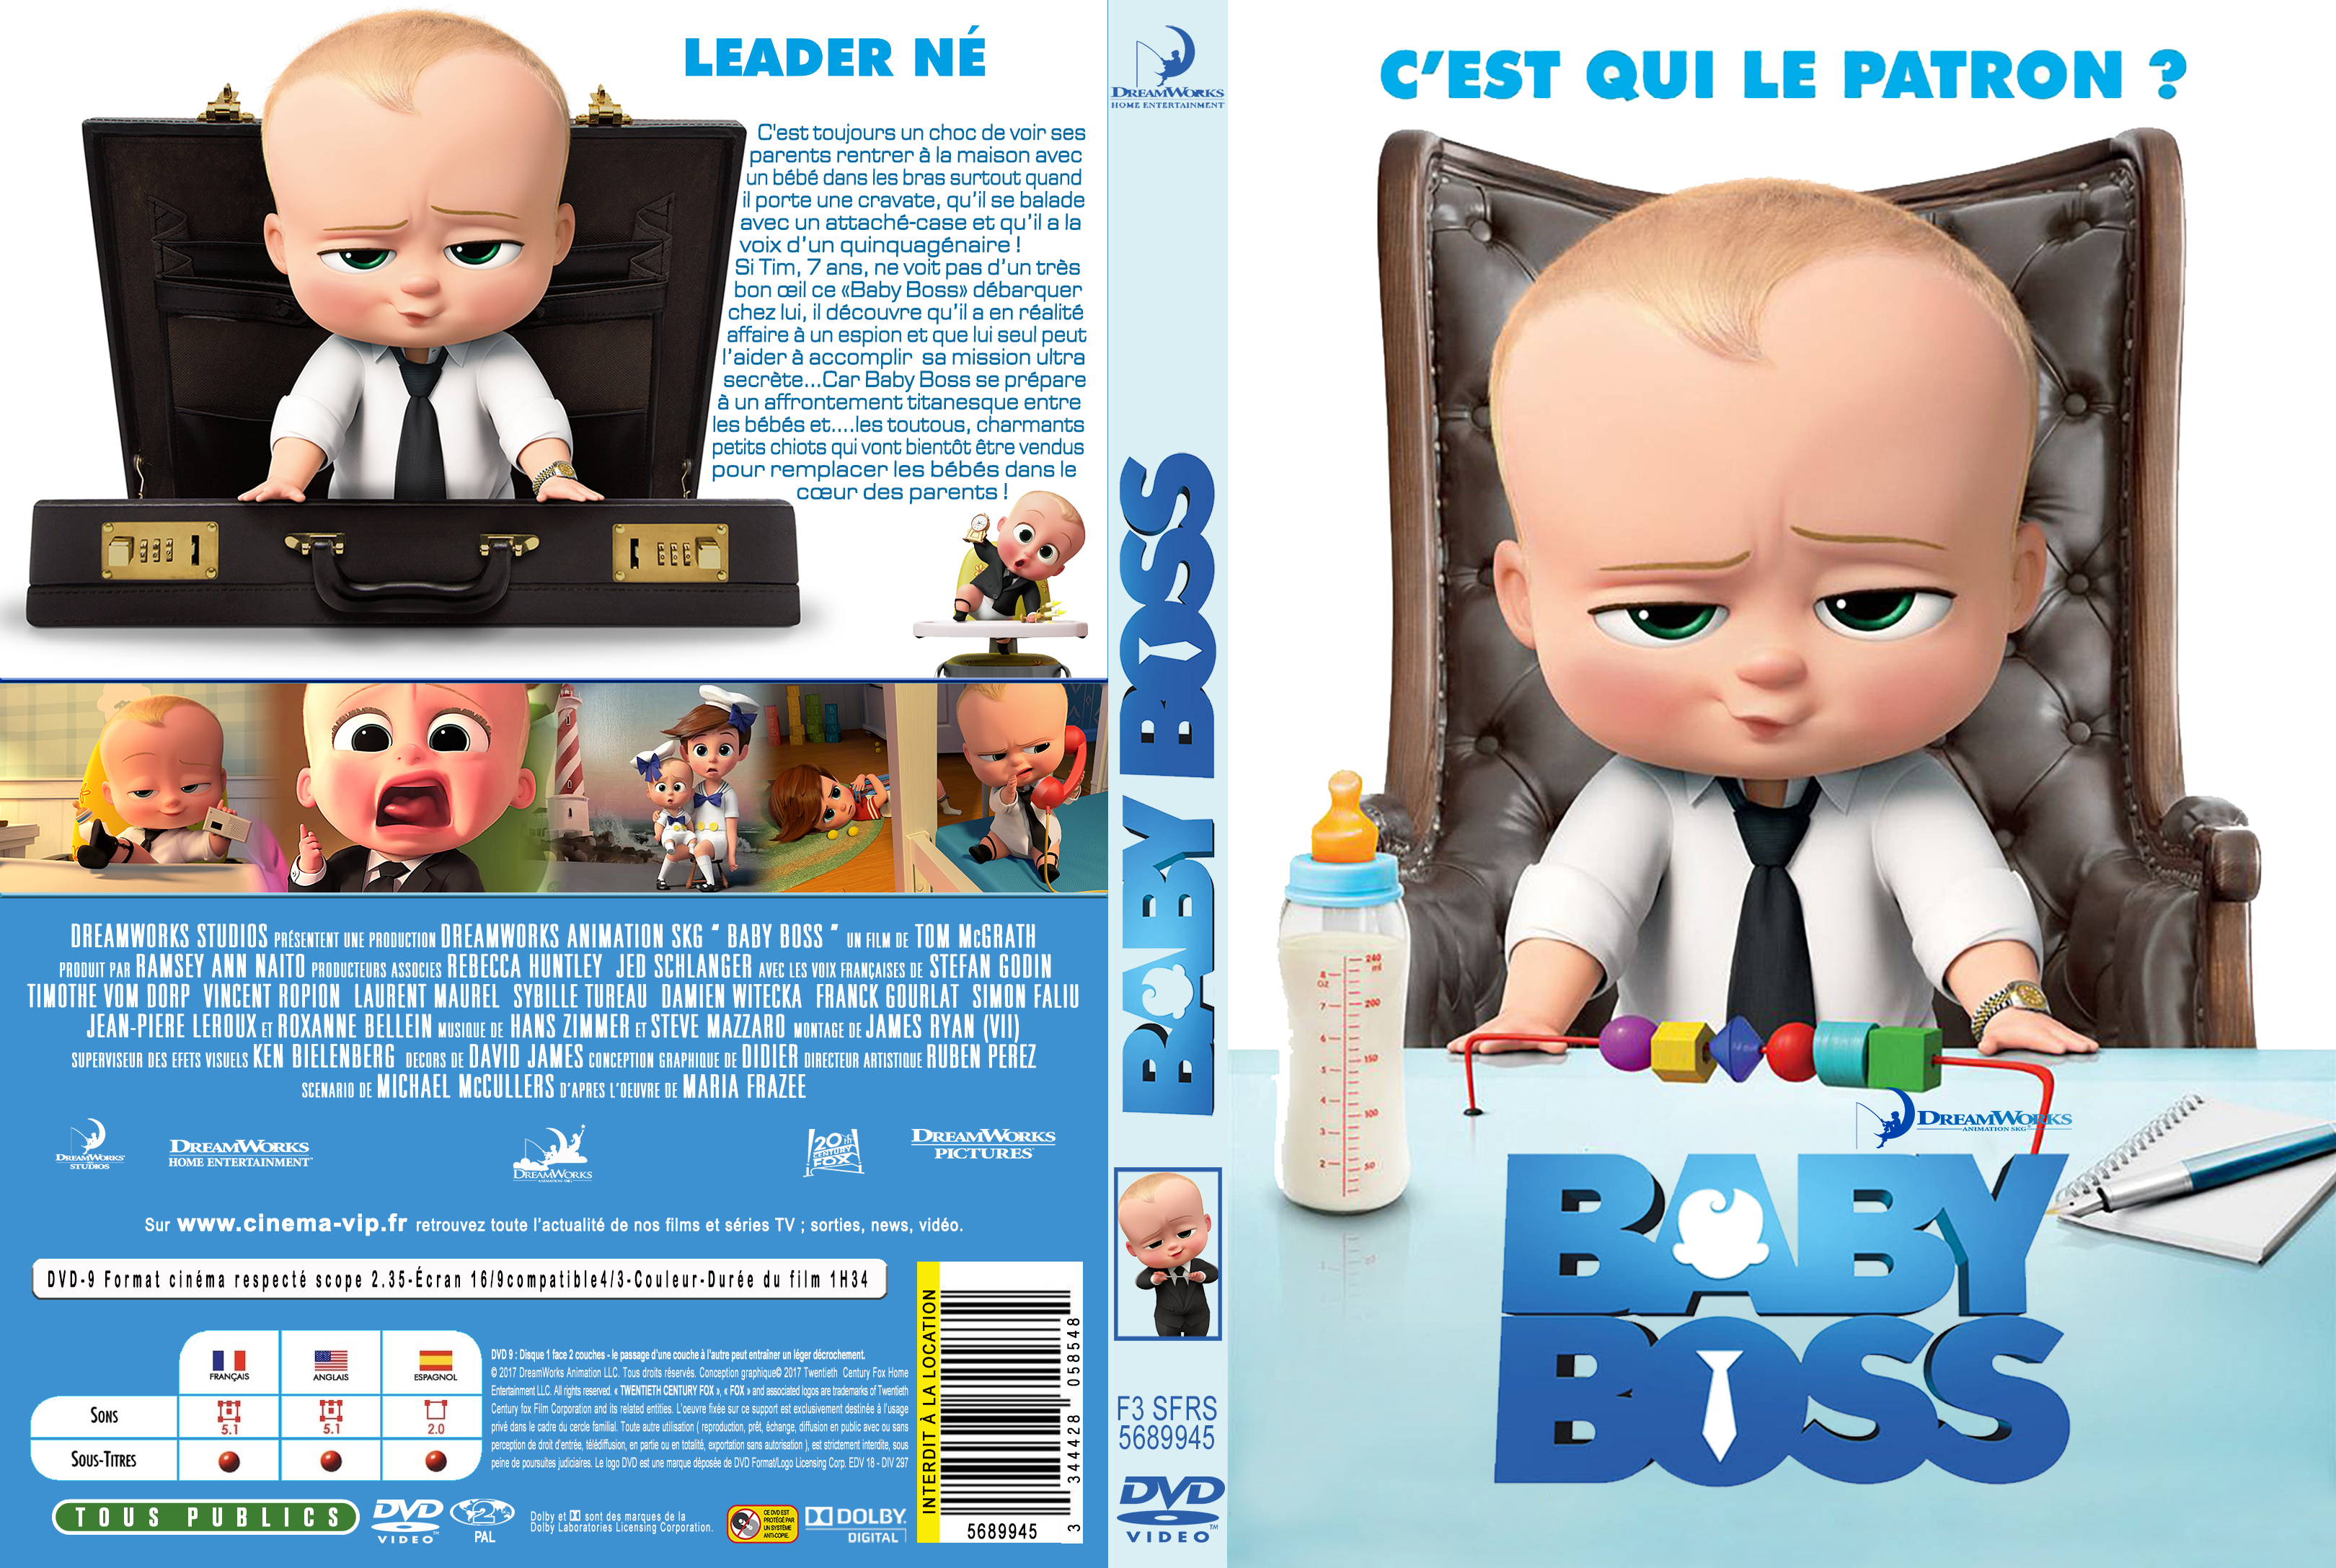 Baby Boss Jaquette Dvd Dvd Covers Cover Century Over 500 000 Album Art Covers For Free